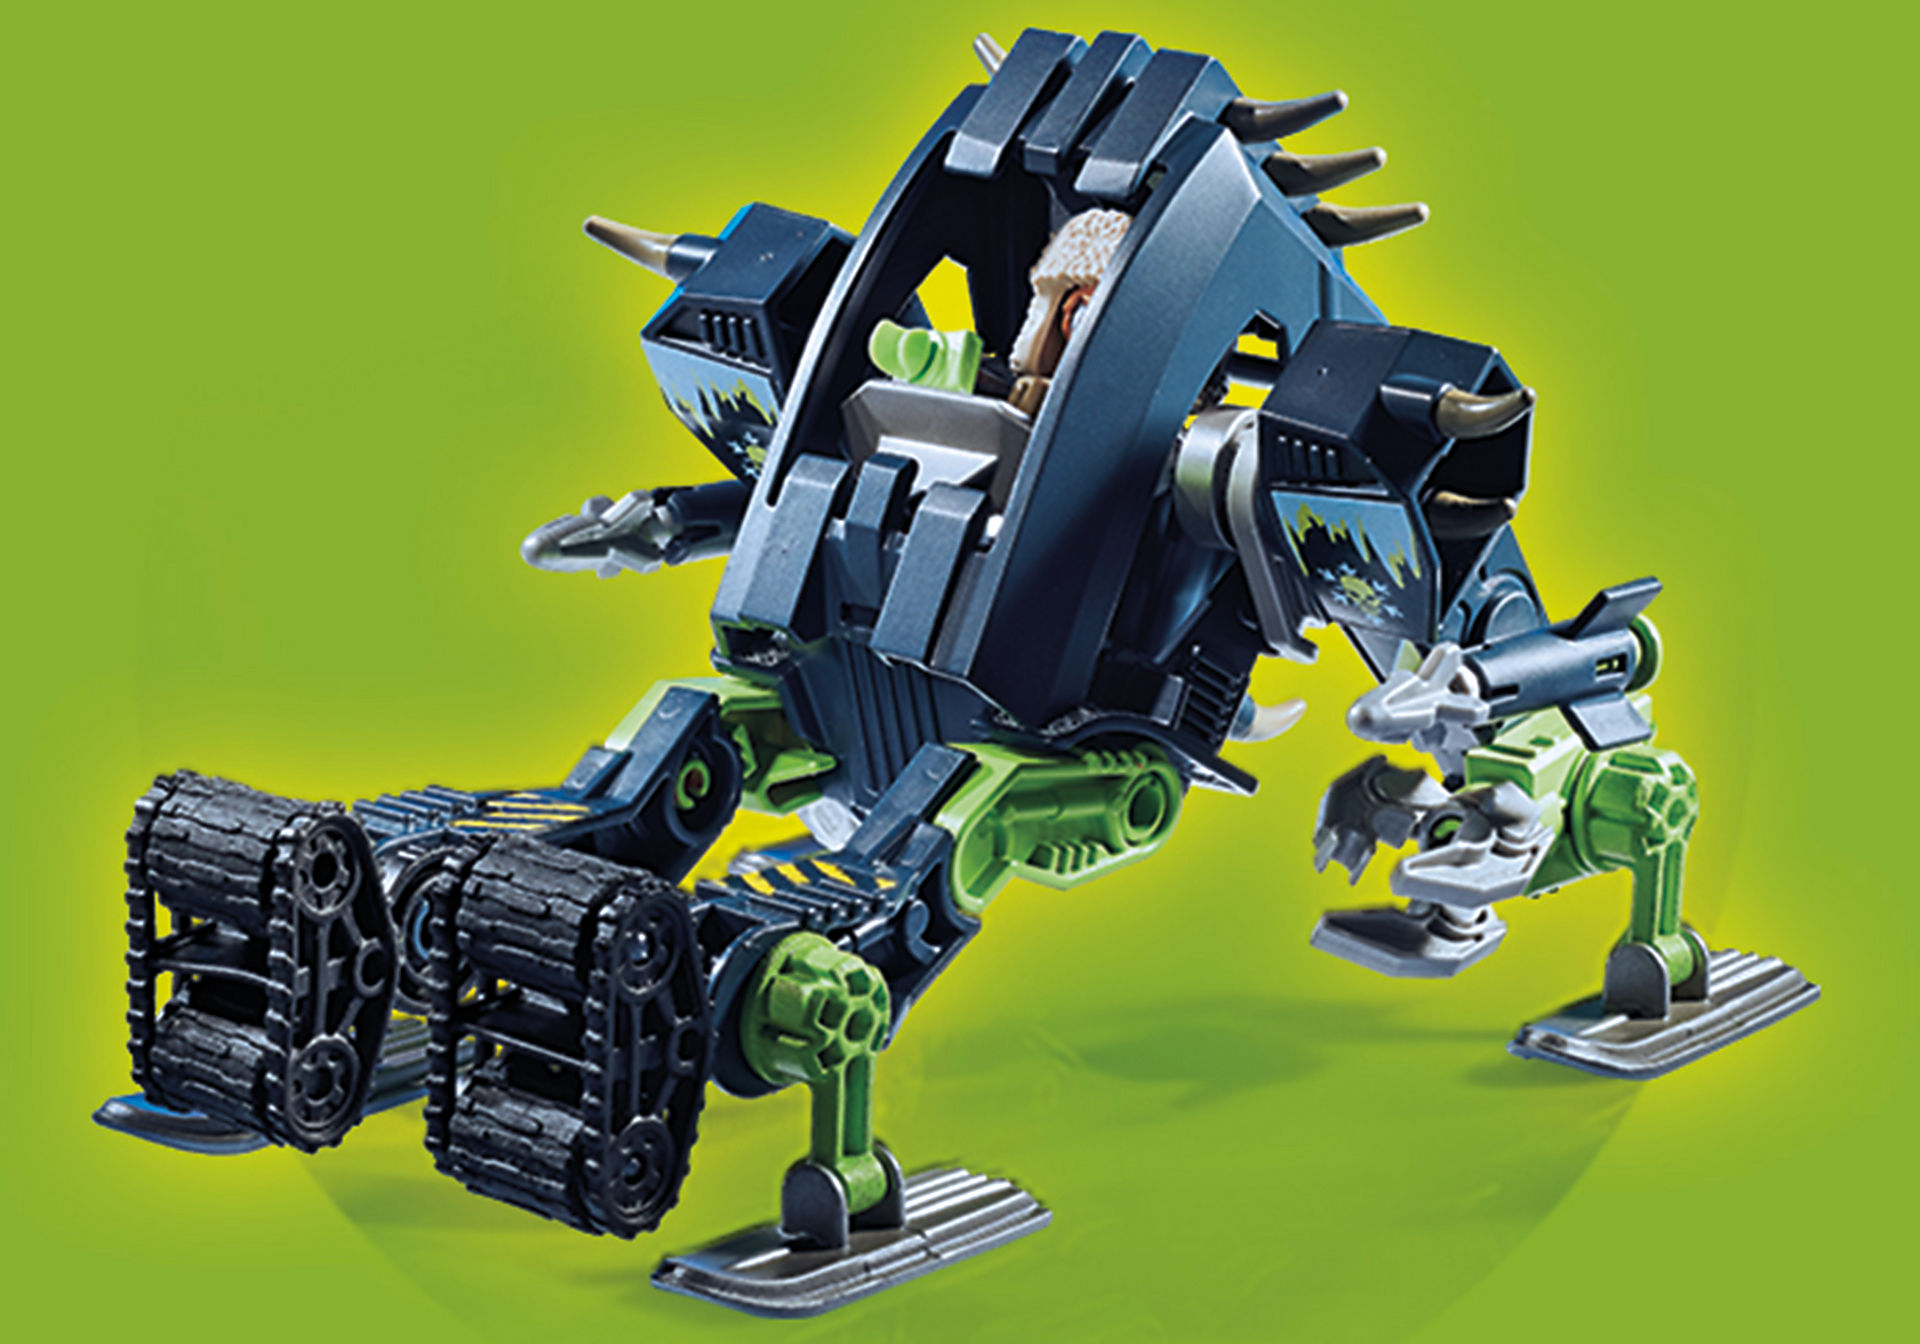 70233 Arctic Rebels Ice Robot zoom image6